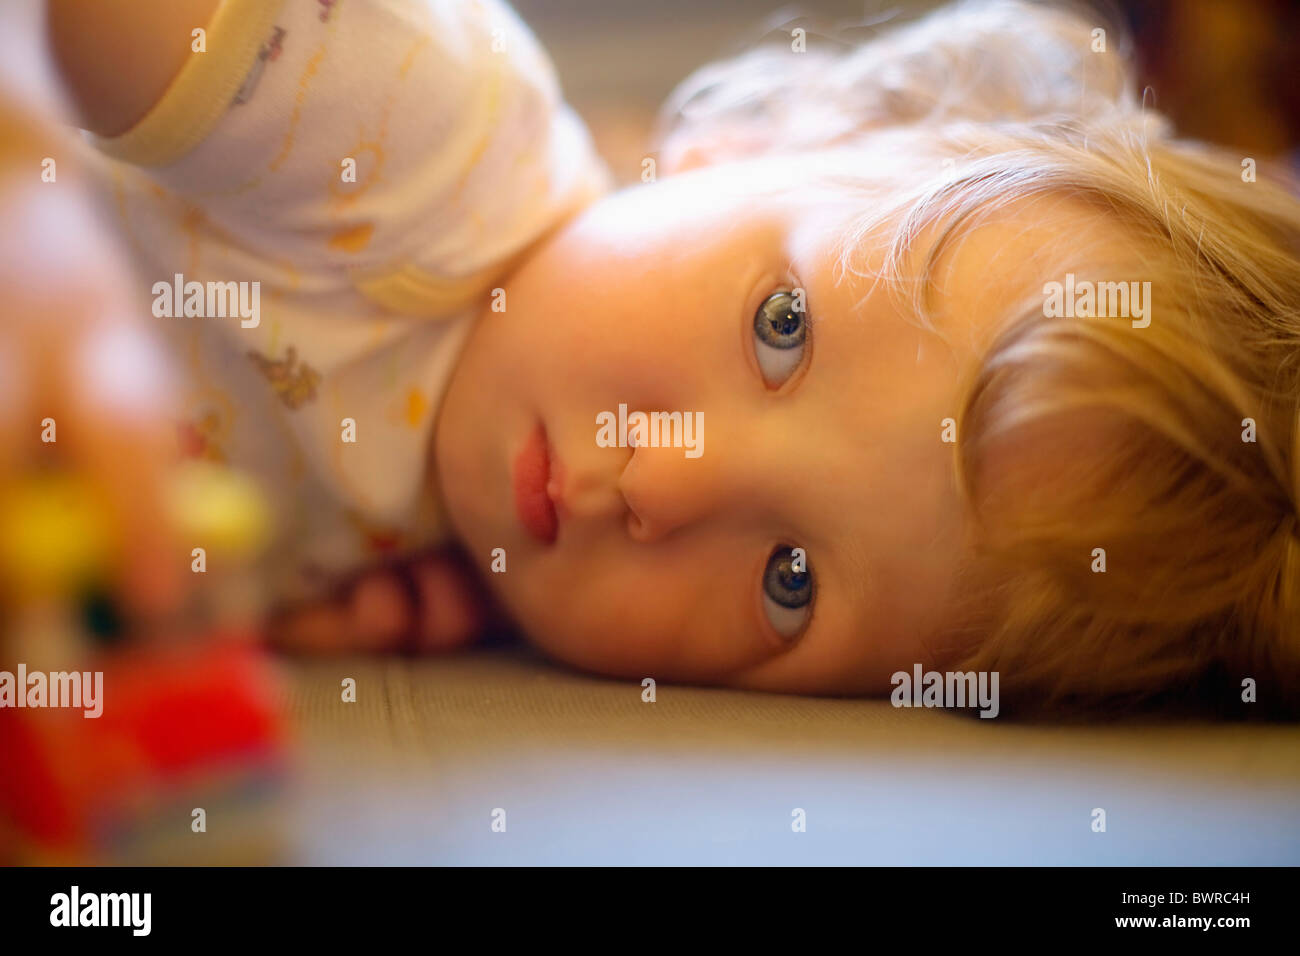 Boy 16 Months Playing Baby Boys Caucasian Child Childhood Children Contemporery Indoor Infant Infantile I - Stock Image